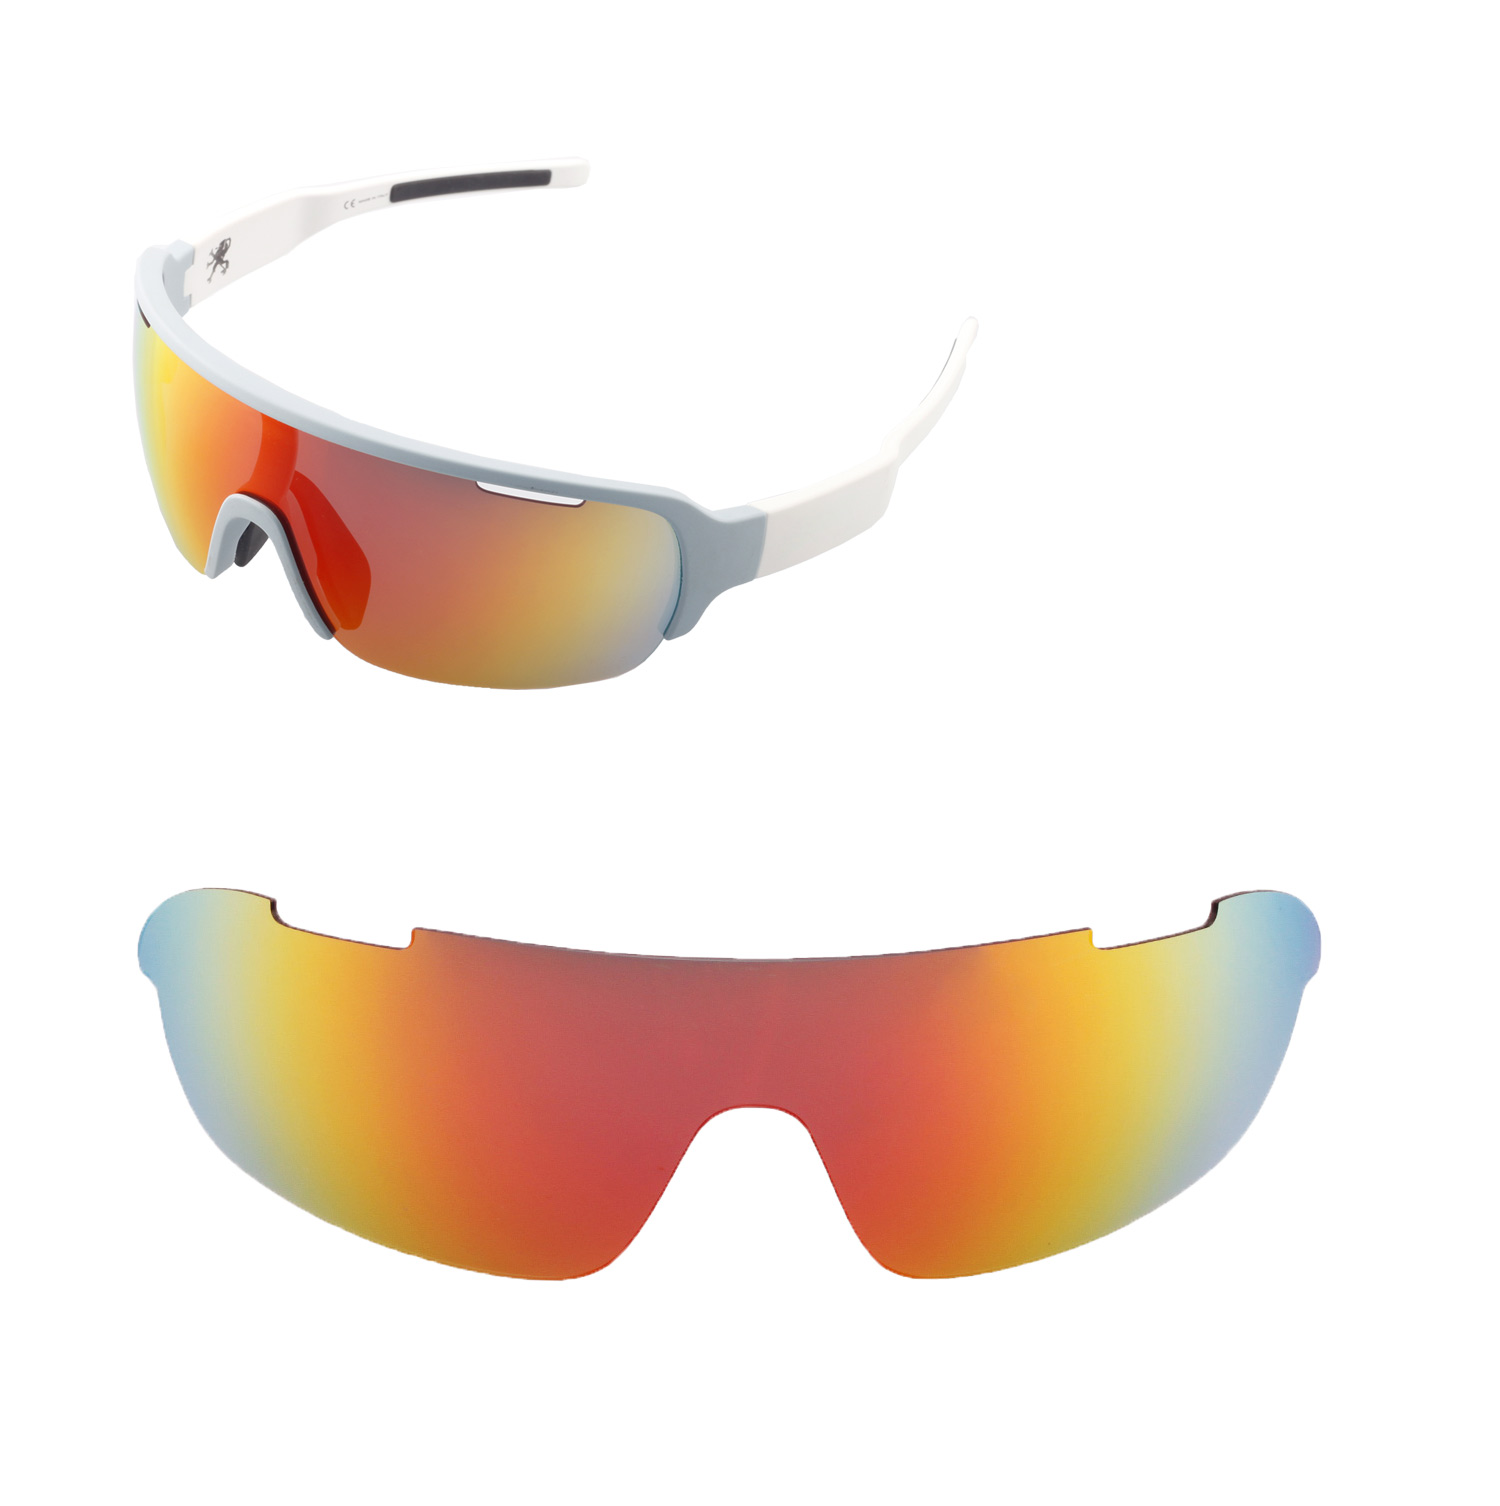 63e222de610 Details about Walleva Polarized Fire Red Replacement Lenses For POC Half  Blade Sunglasses